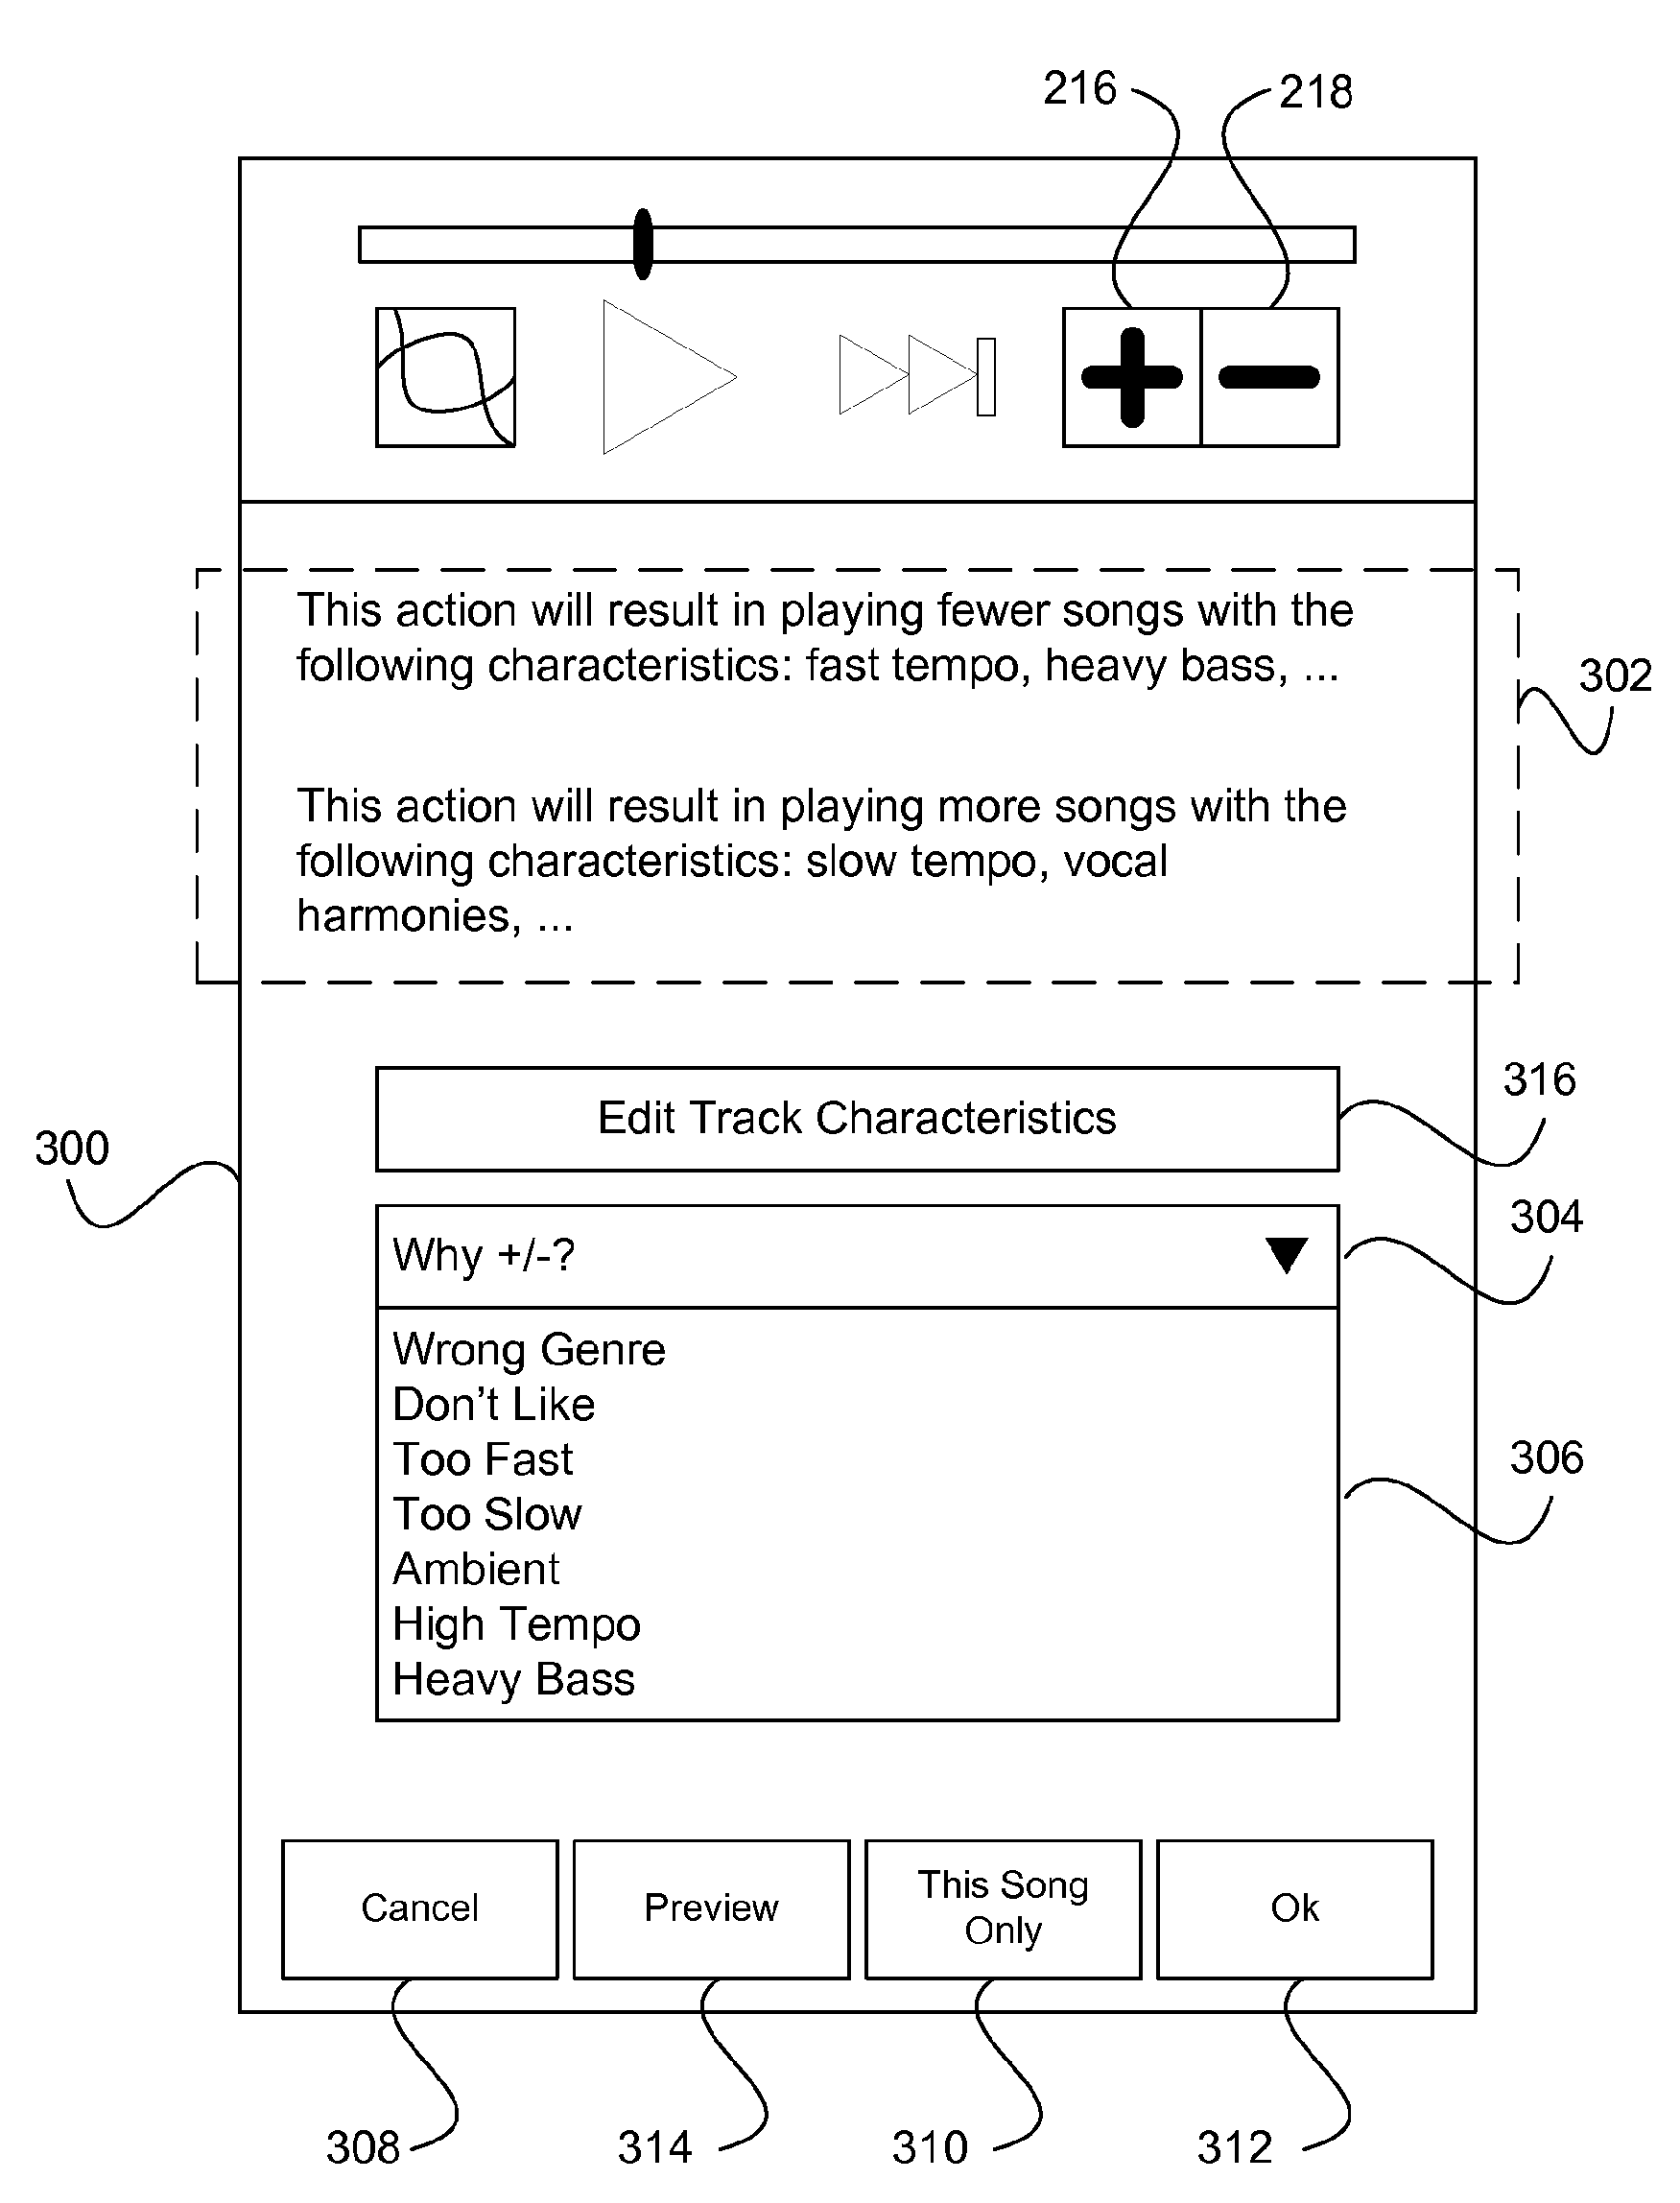 Apple patent (personalized iTunes Radio, drawing 003)